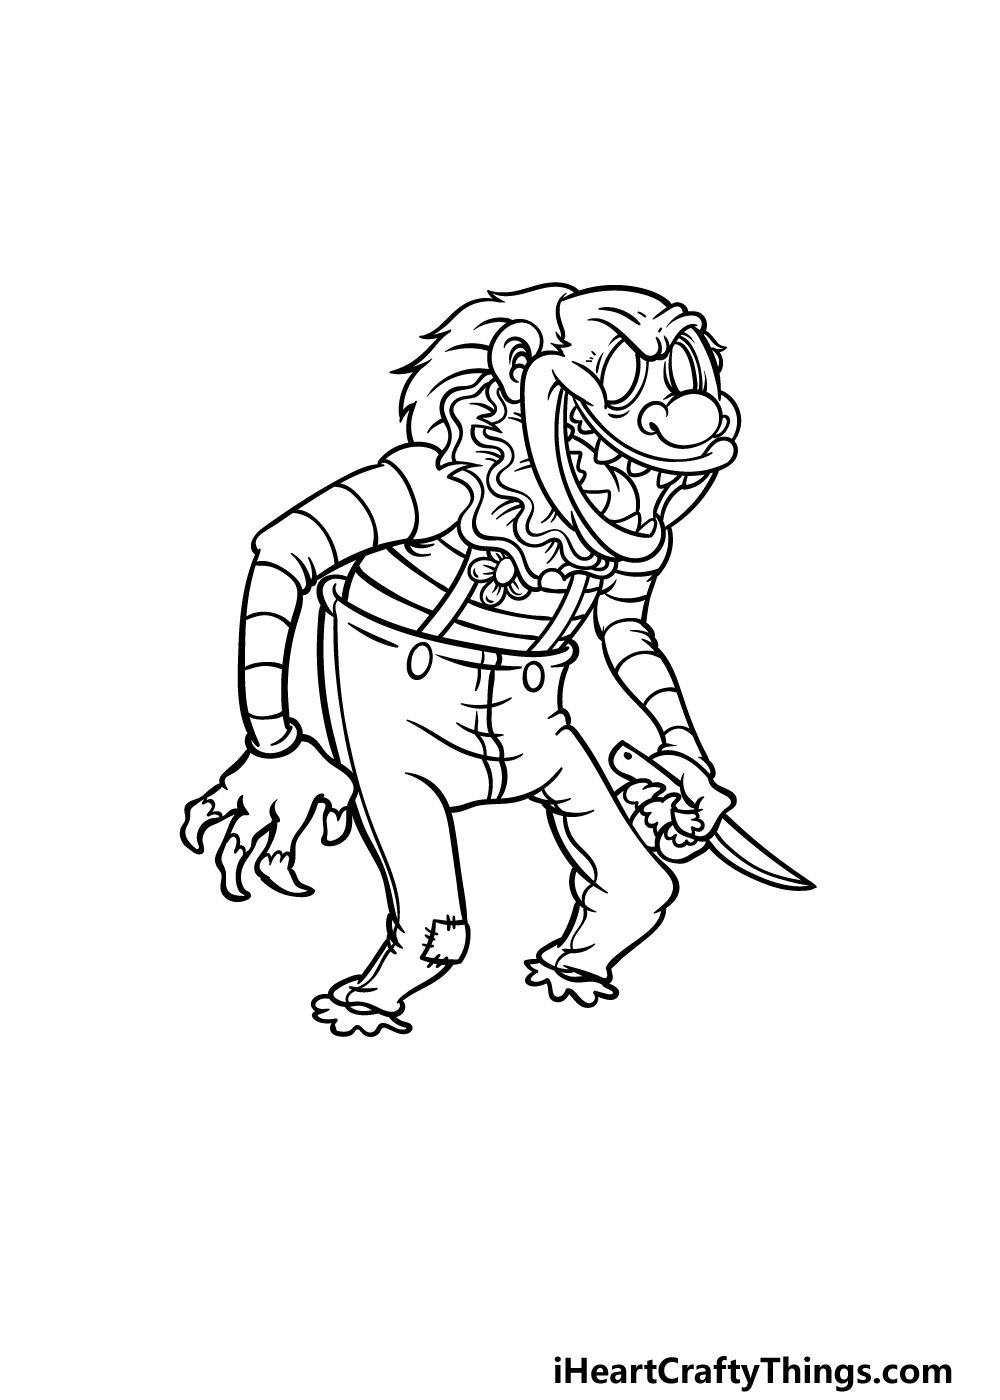 drawing a scary clown step 4